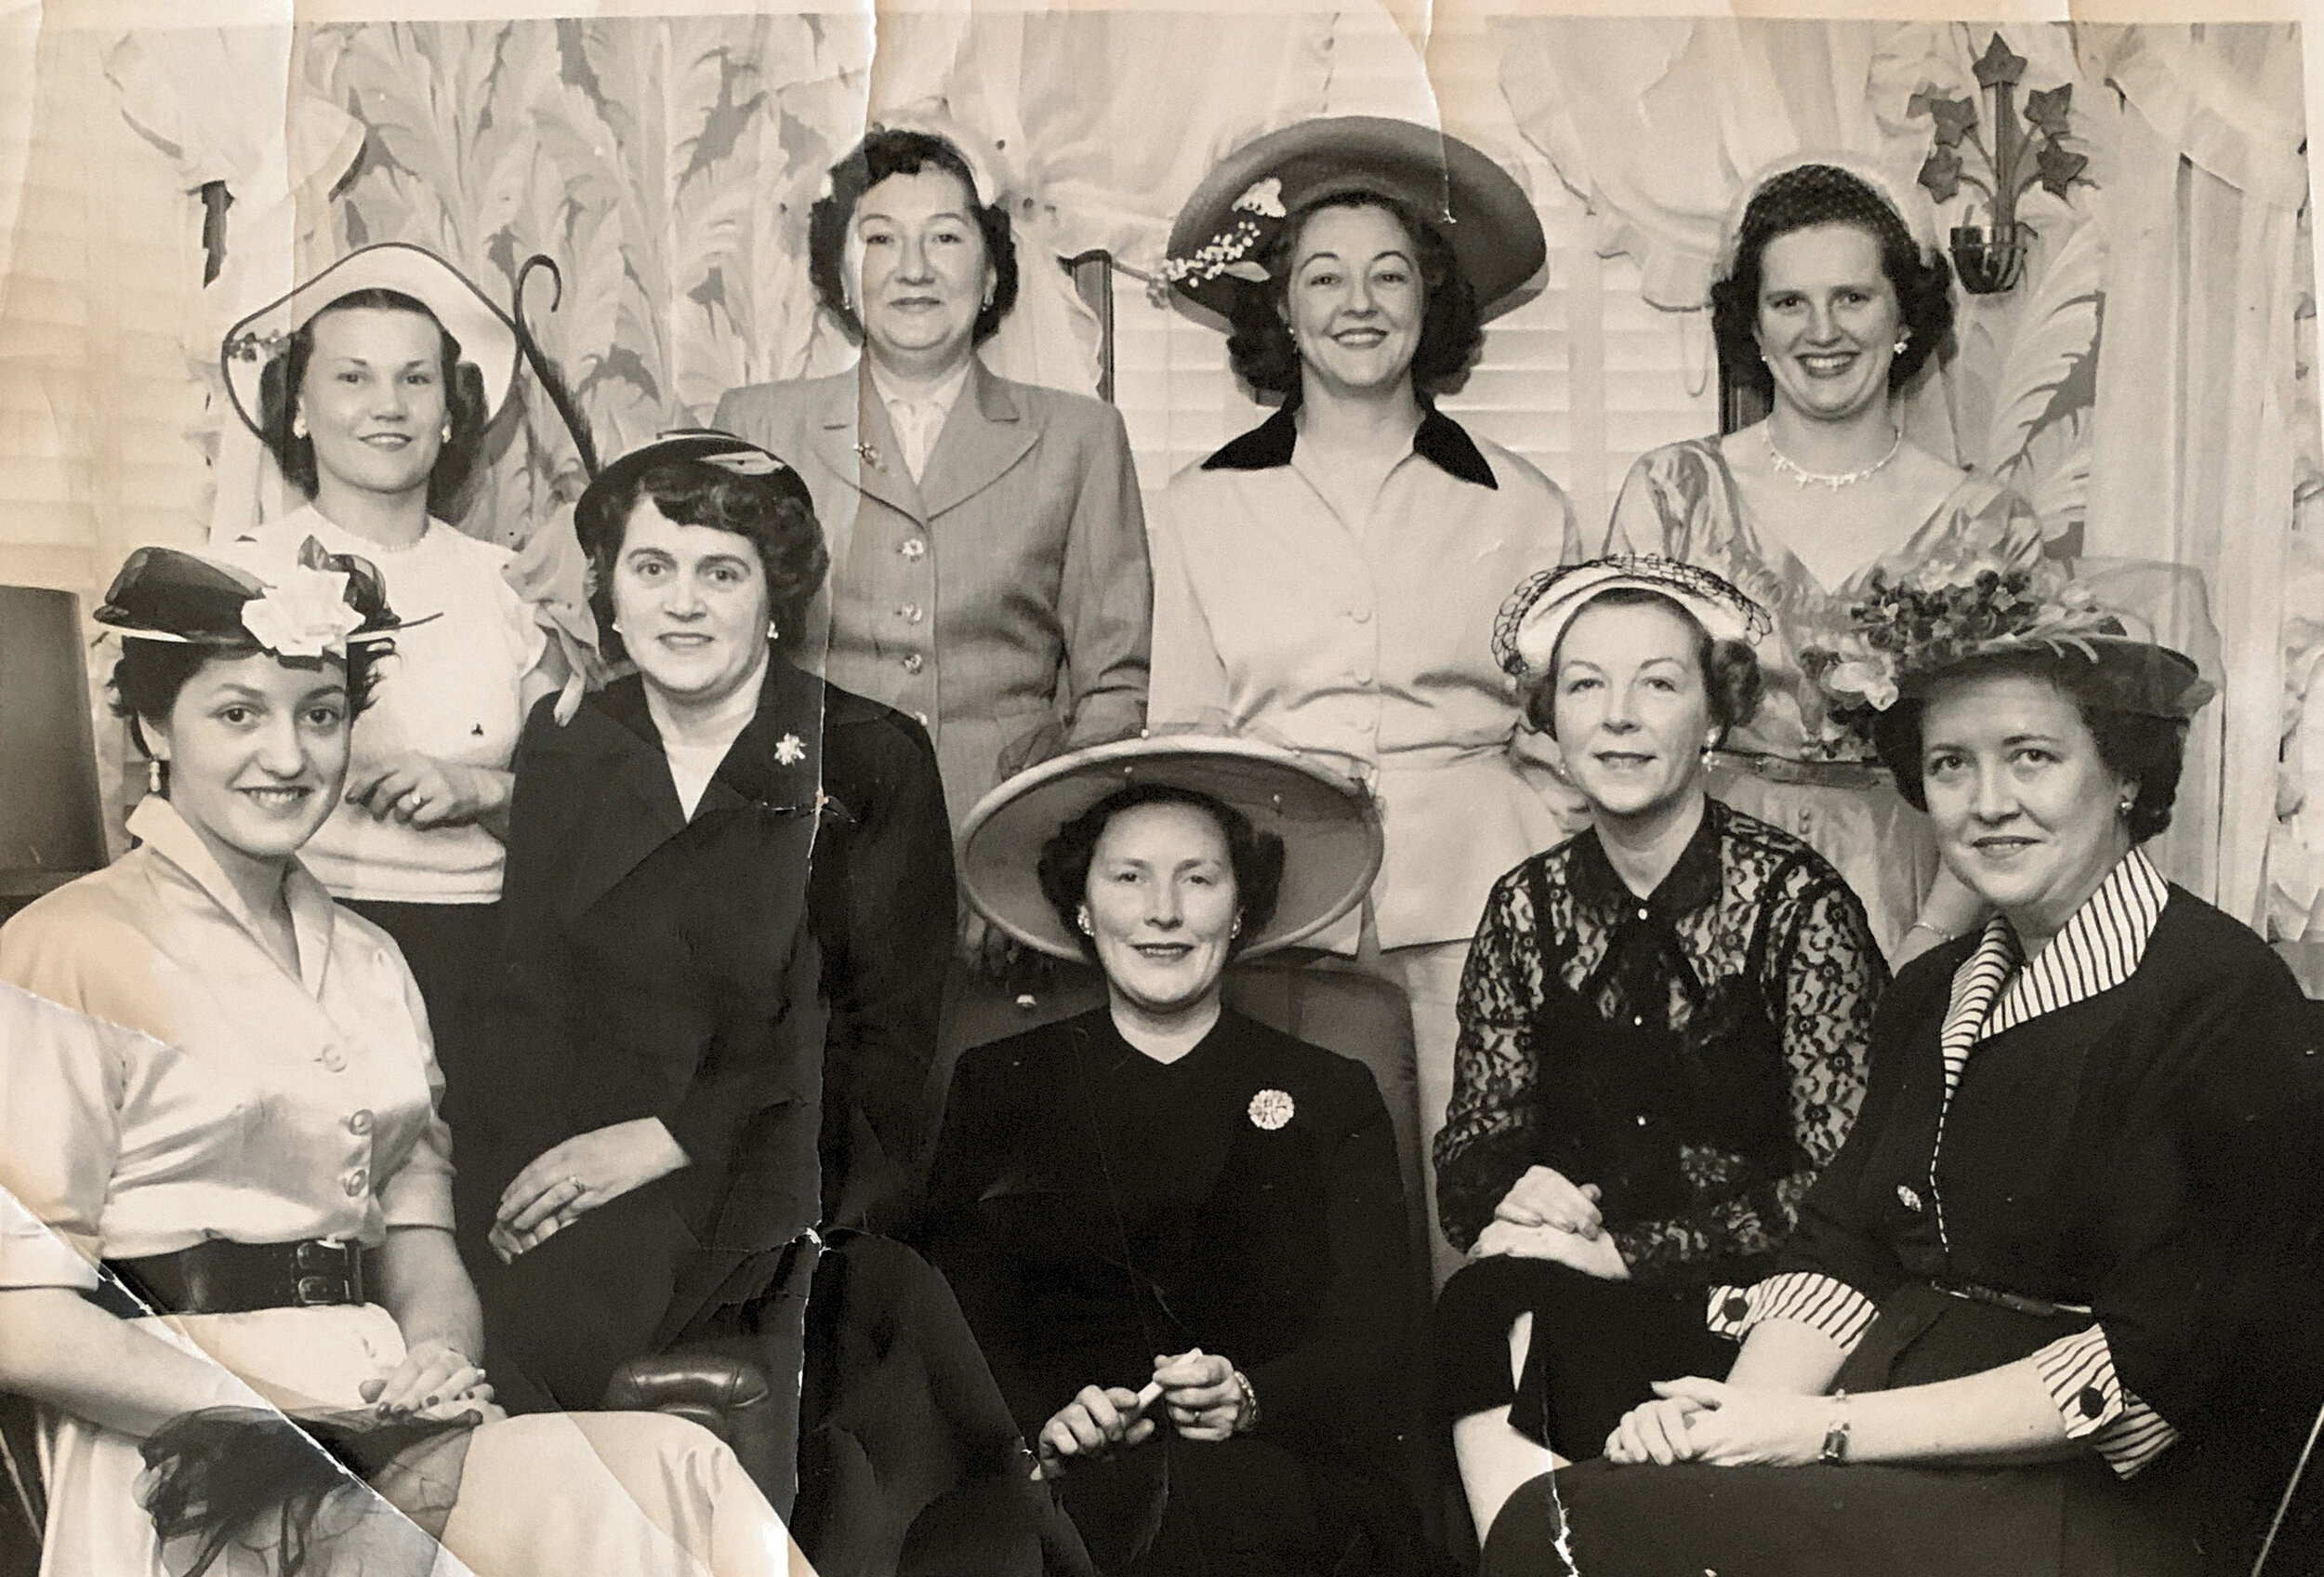 Fashion Show fundraiser for sms early 1950s.jpg